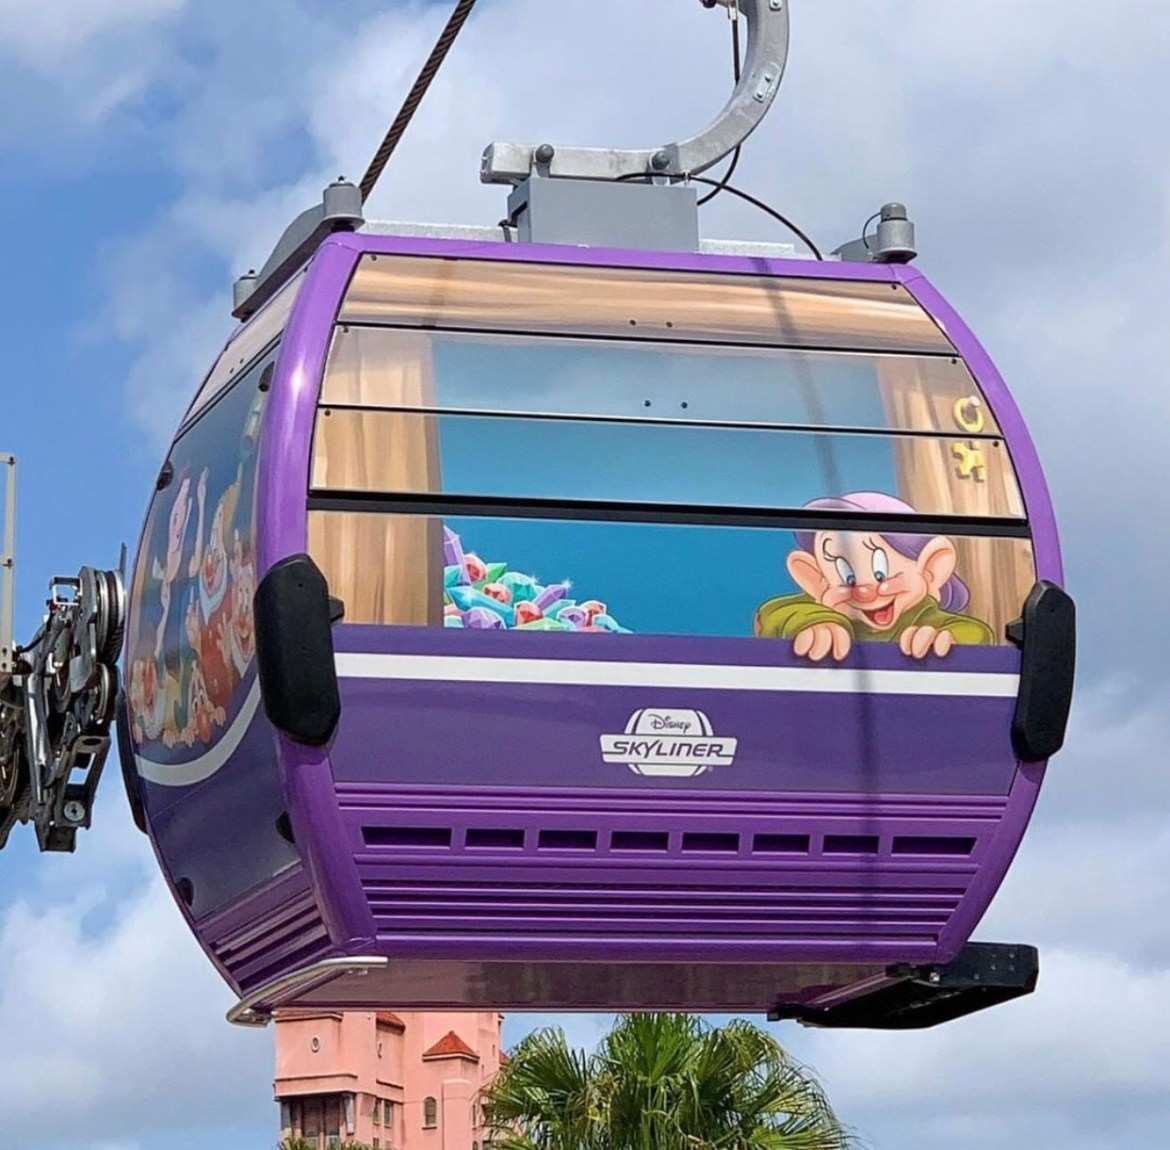 Disney's Skyliner Gondola's Have Been Uncovered at Disney's Hollywood Studios